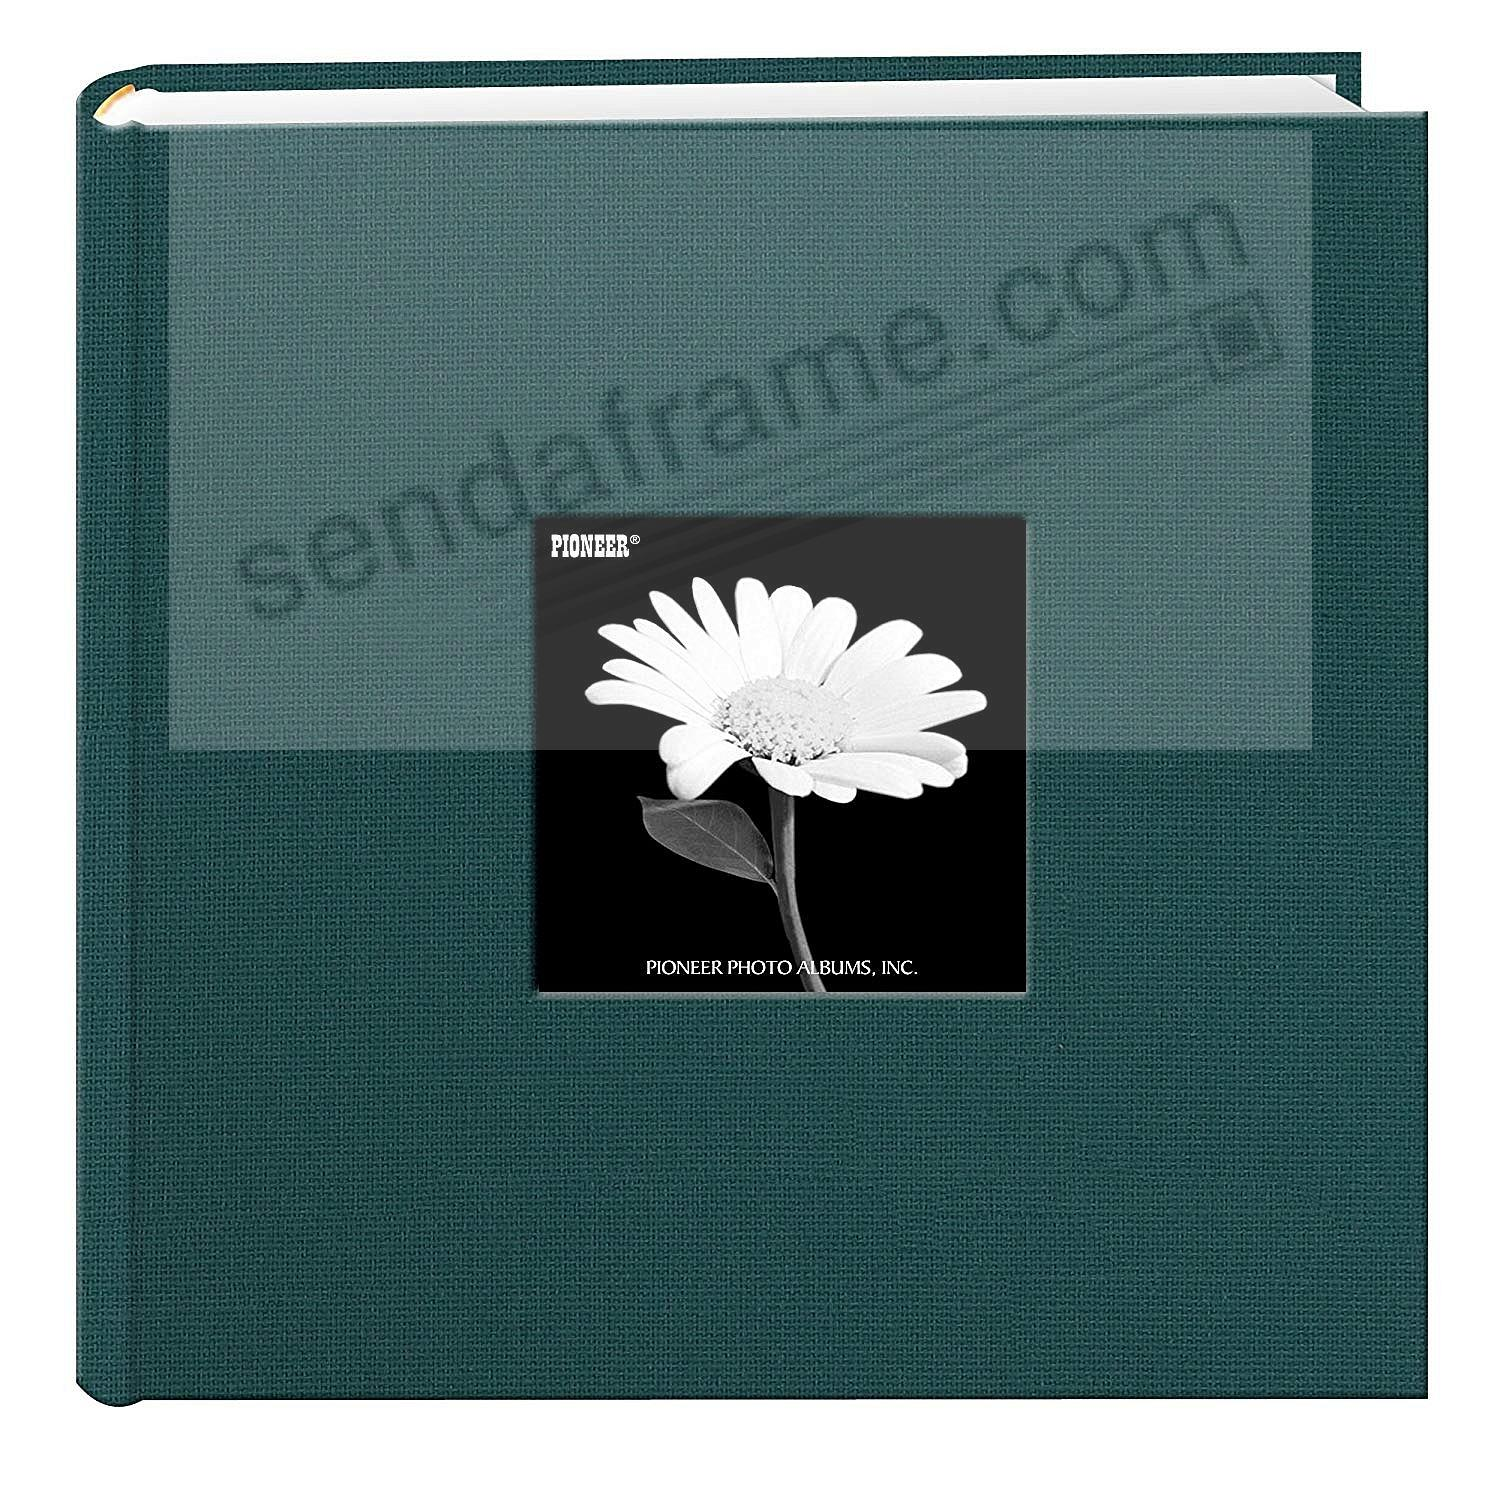 MAJESTIC TEAL Cloth 2-up frame cover photo album by Pioneer®